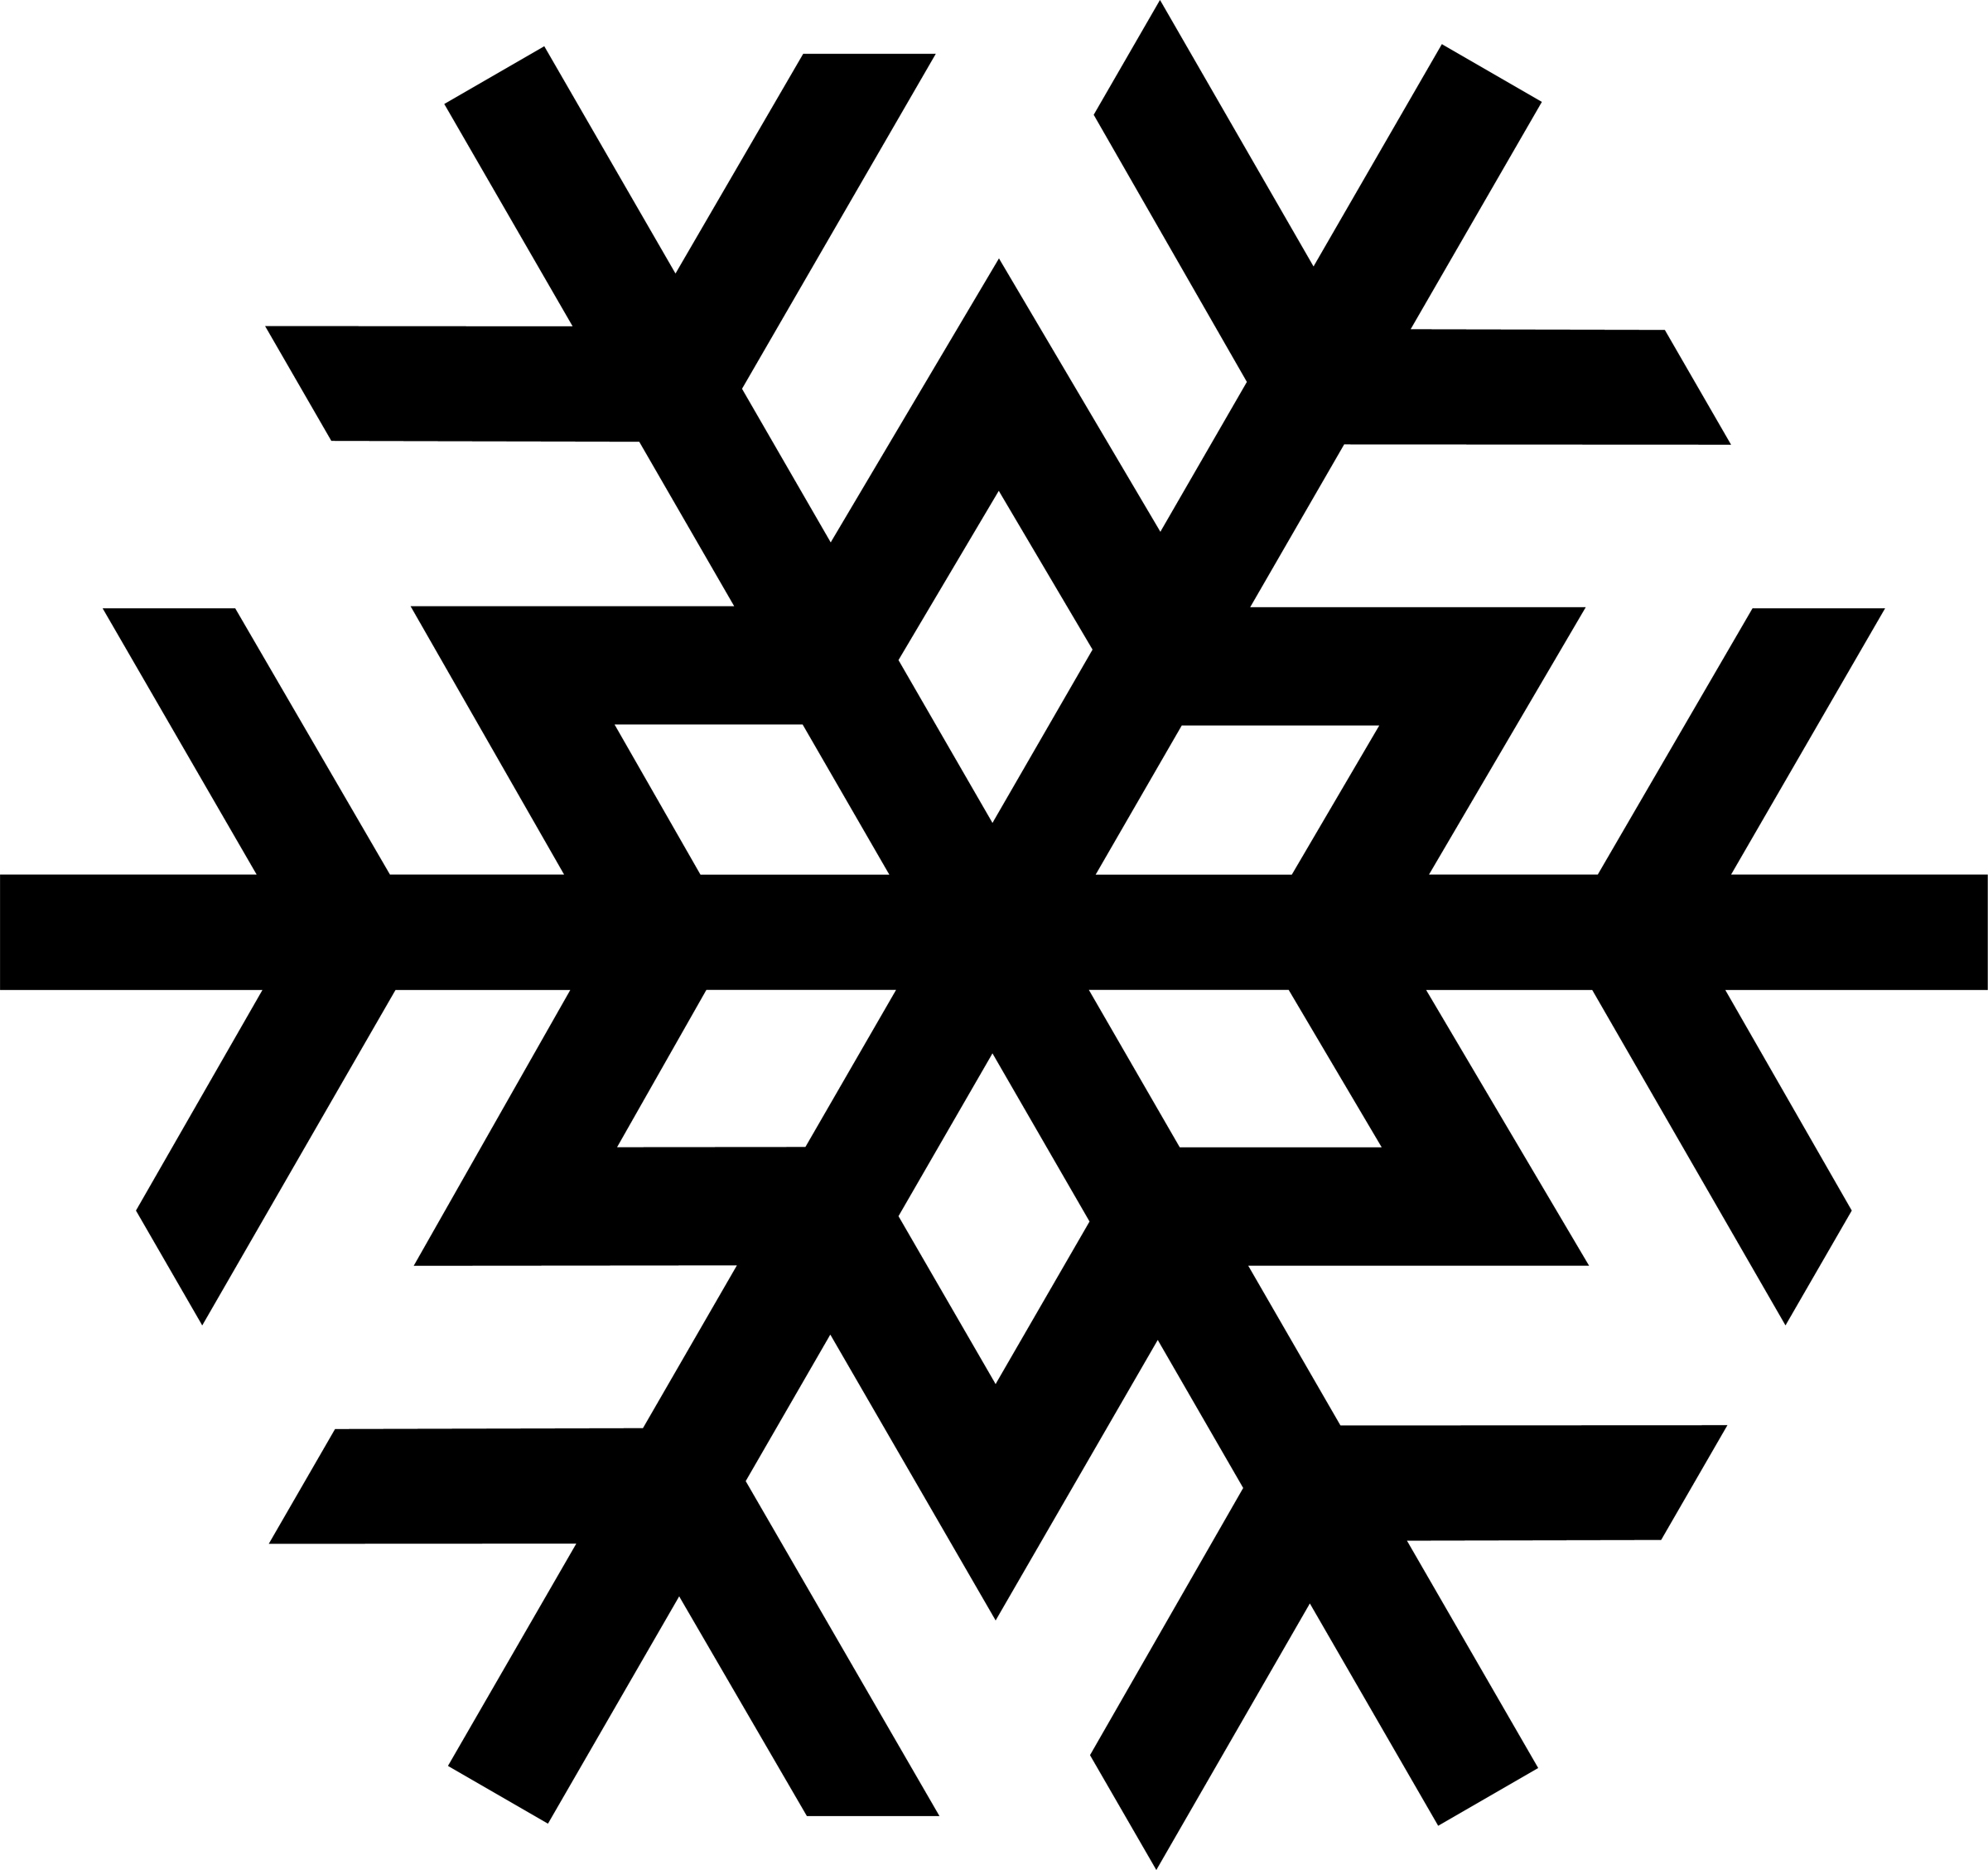 Snowflake clipart black and white panda free